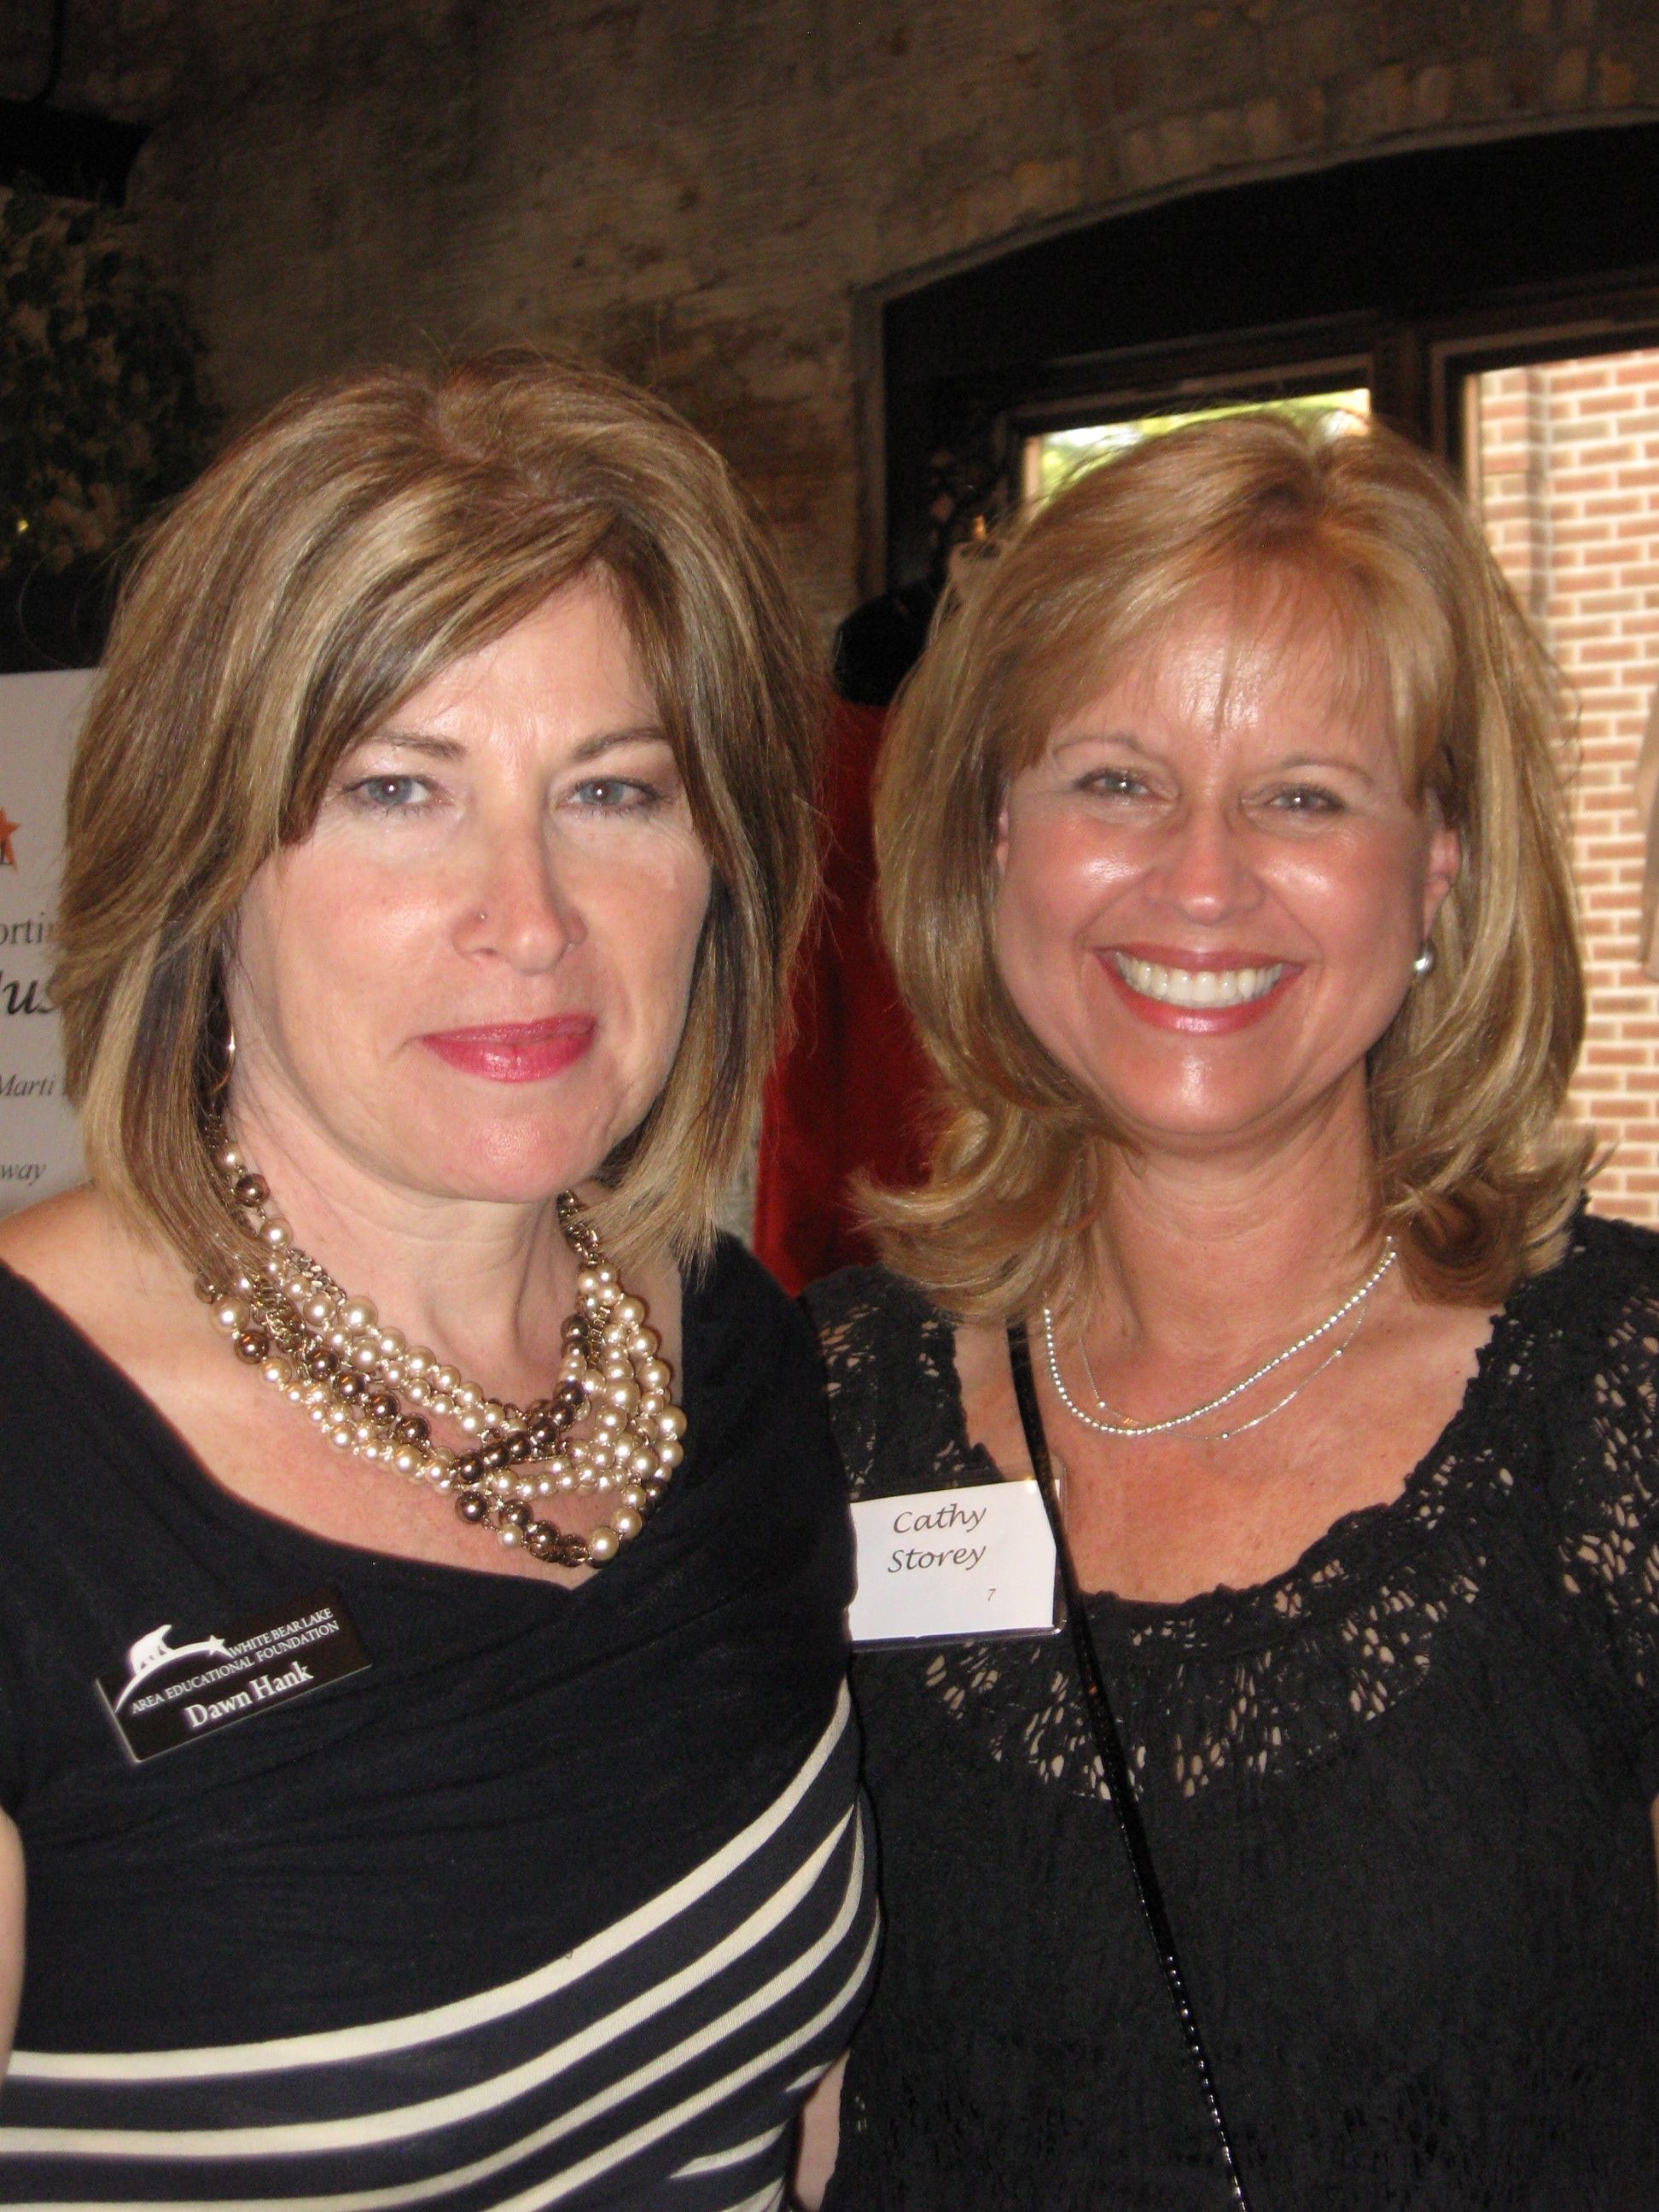 Dawn Hank and Cathy Storey.jpg